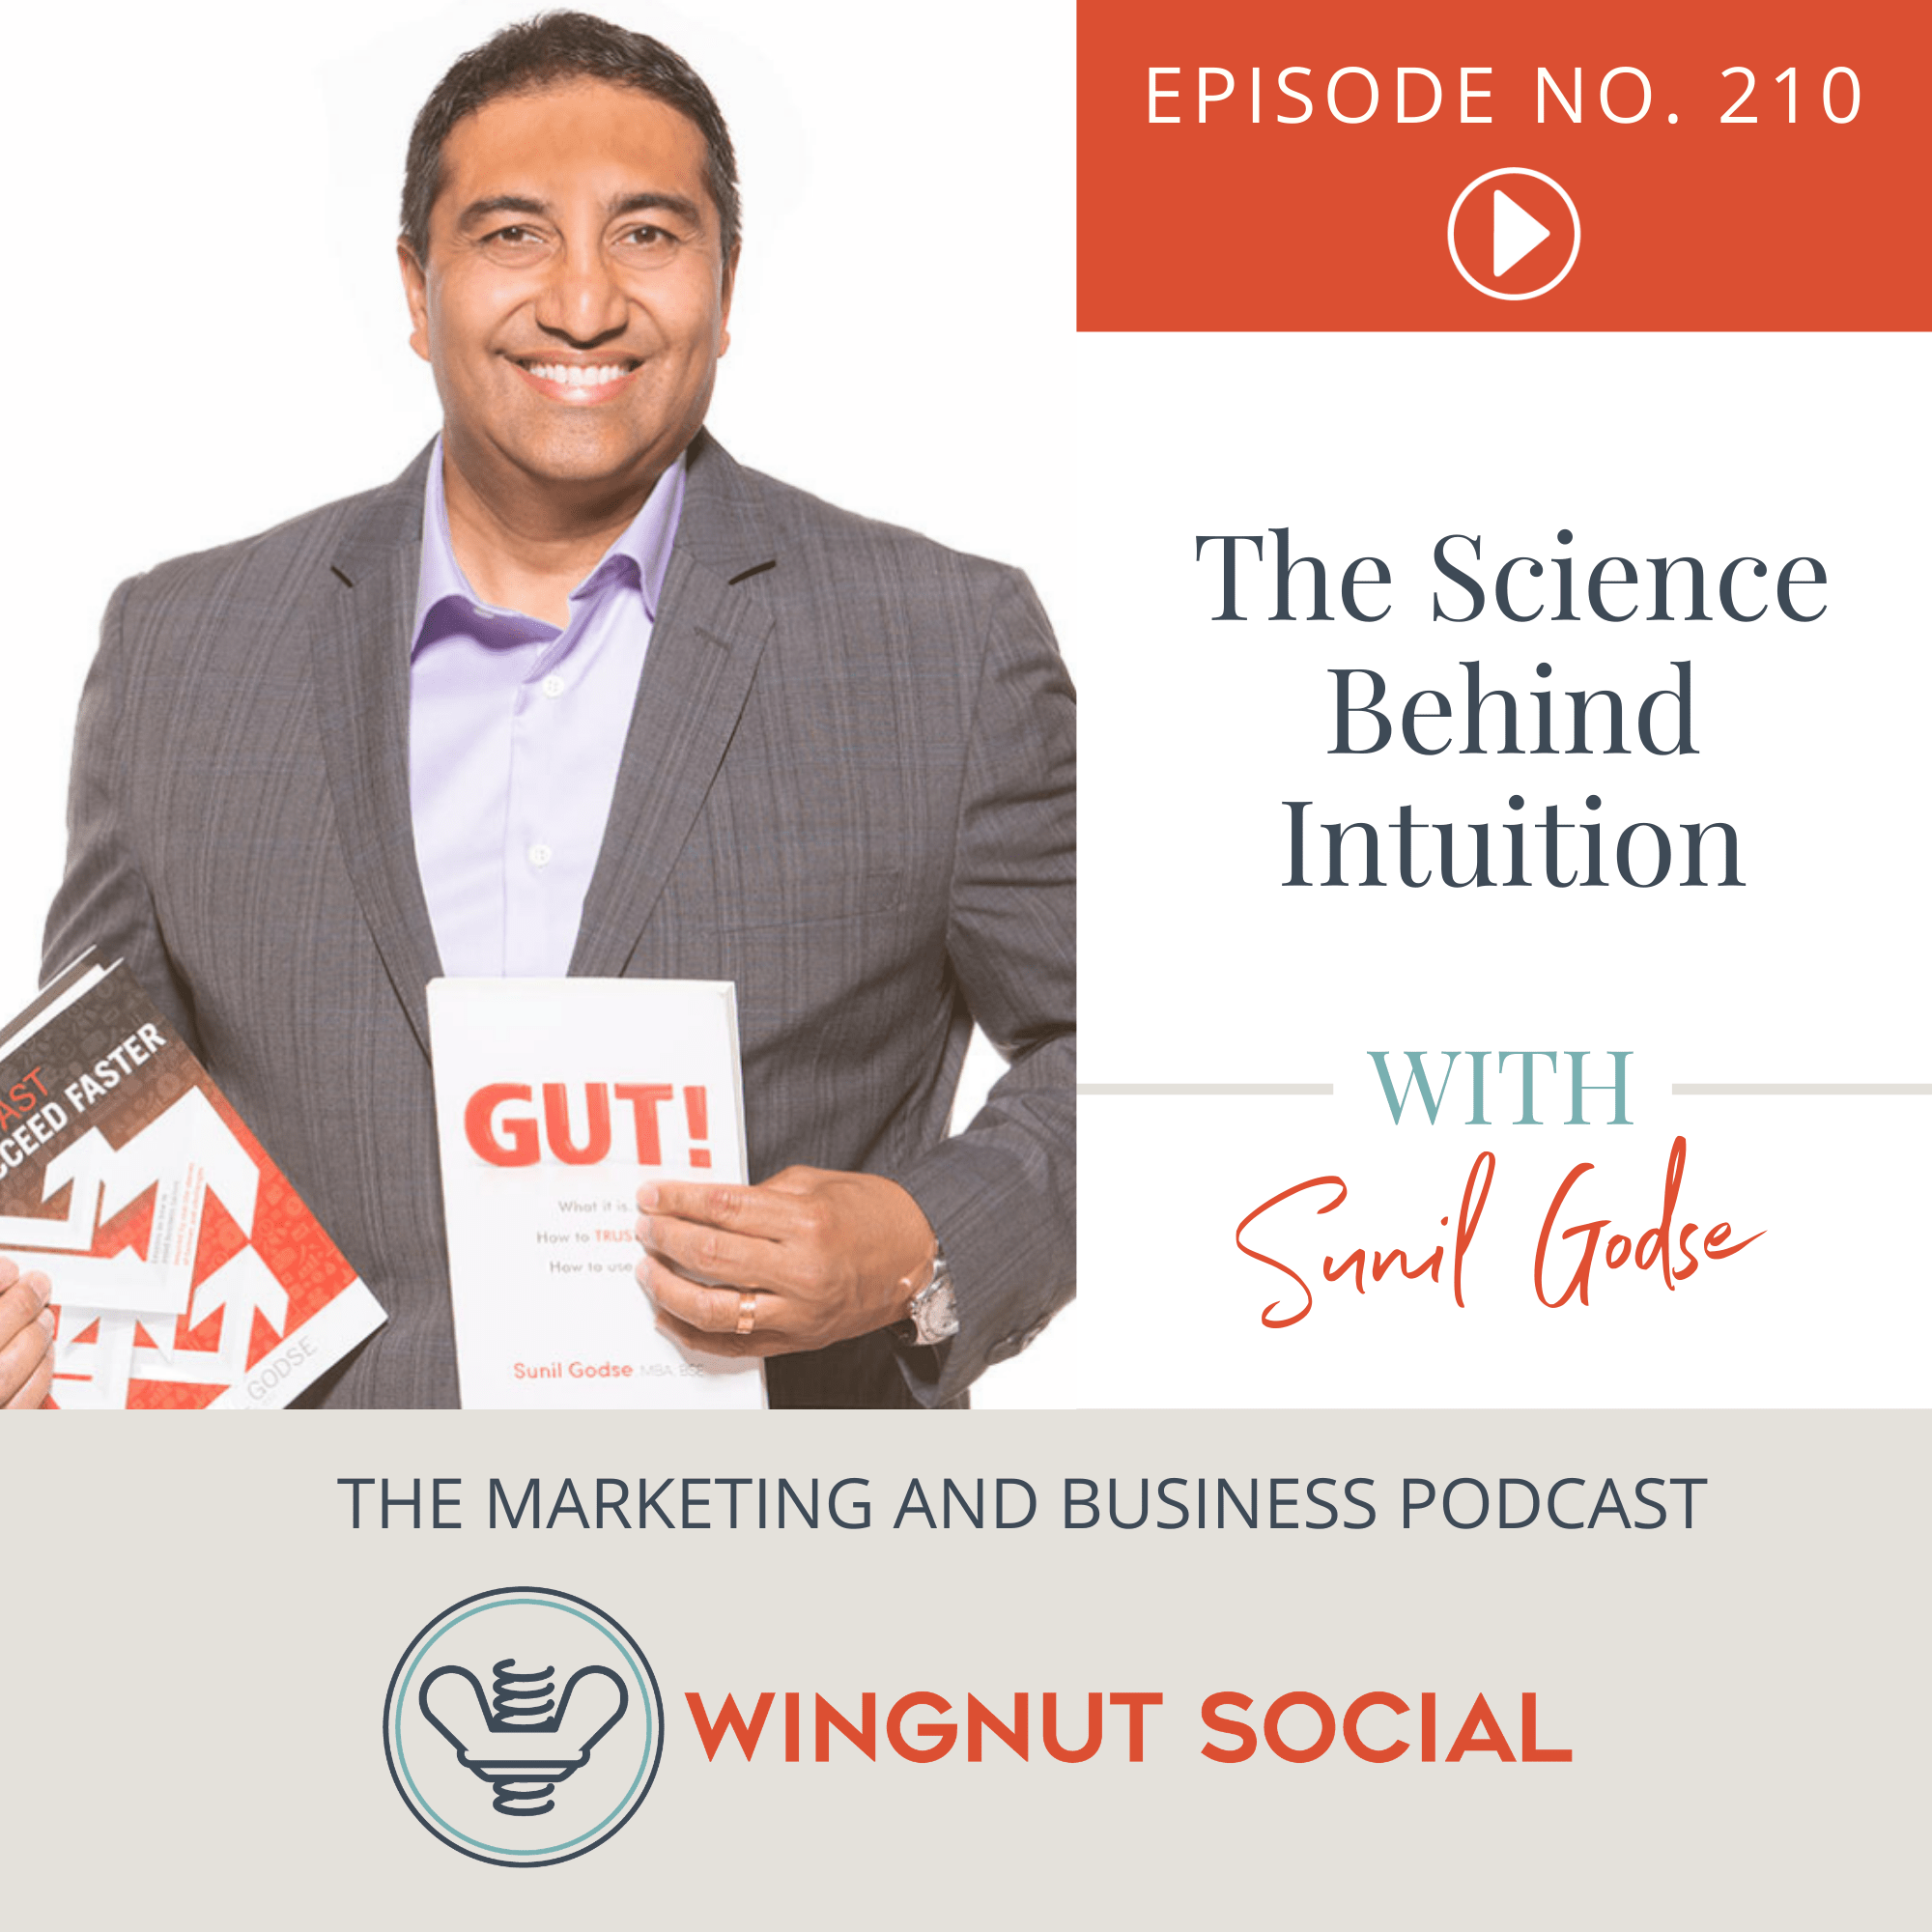 The Science Behind Intuition with Sunil Godse - Episode 210